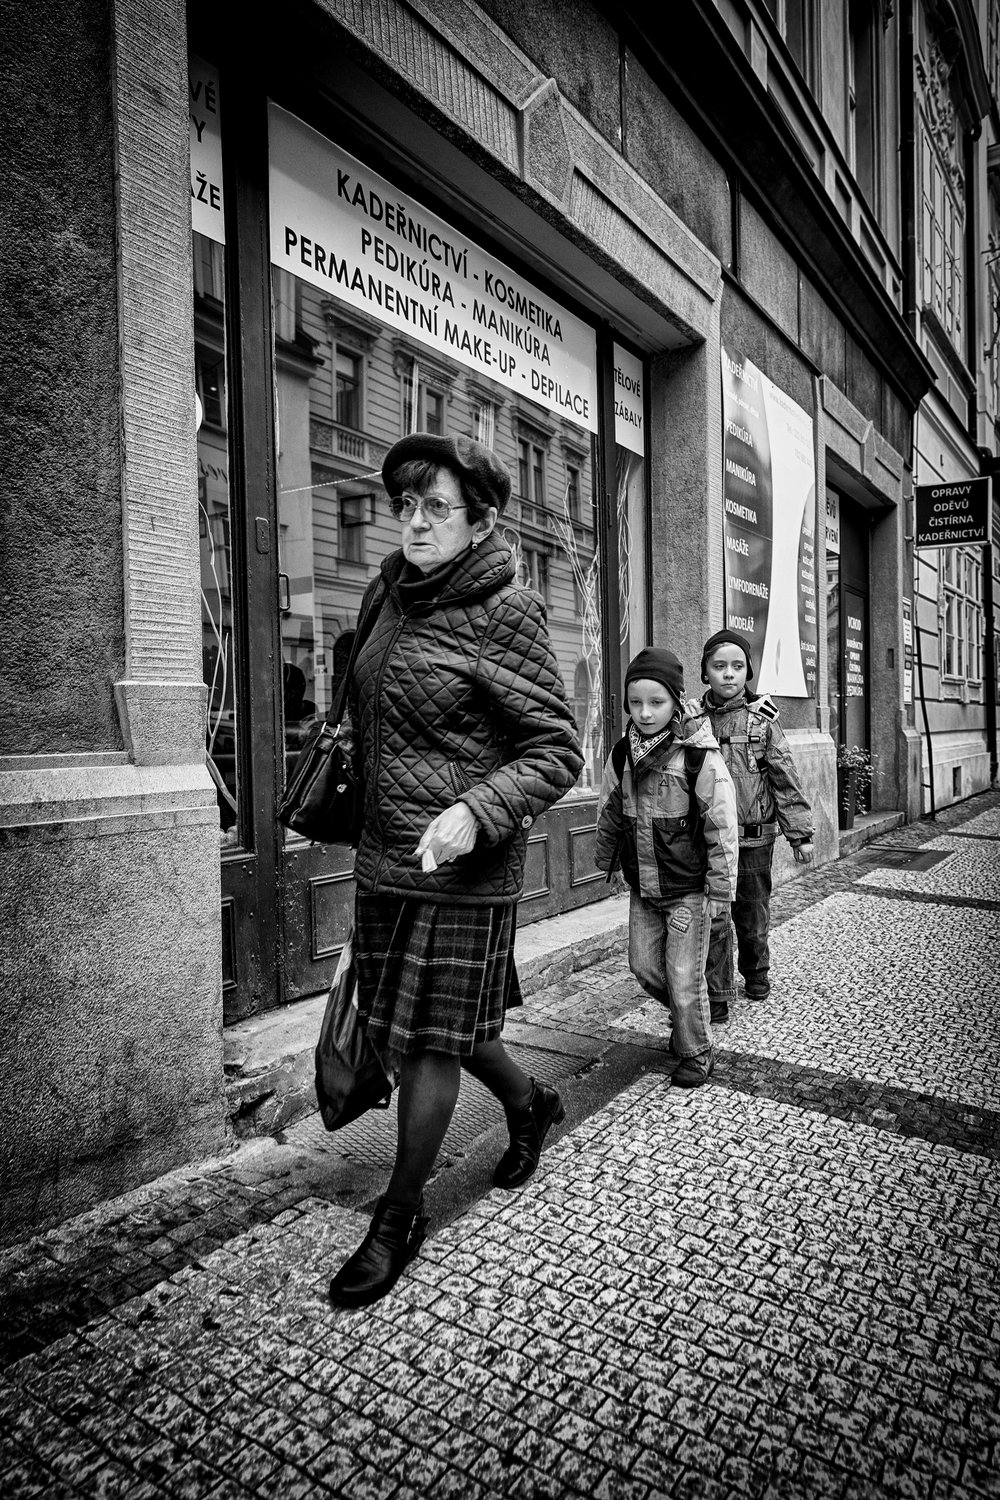 Grandmother's Footsteps. Prague, October 2016.  These two seemed to be following their grandmother very carefully and almost discretely - just like the children's playground game.